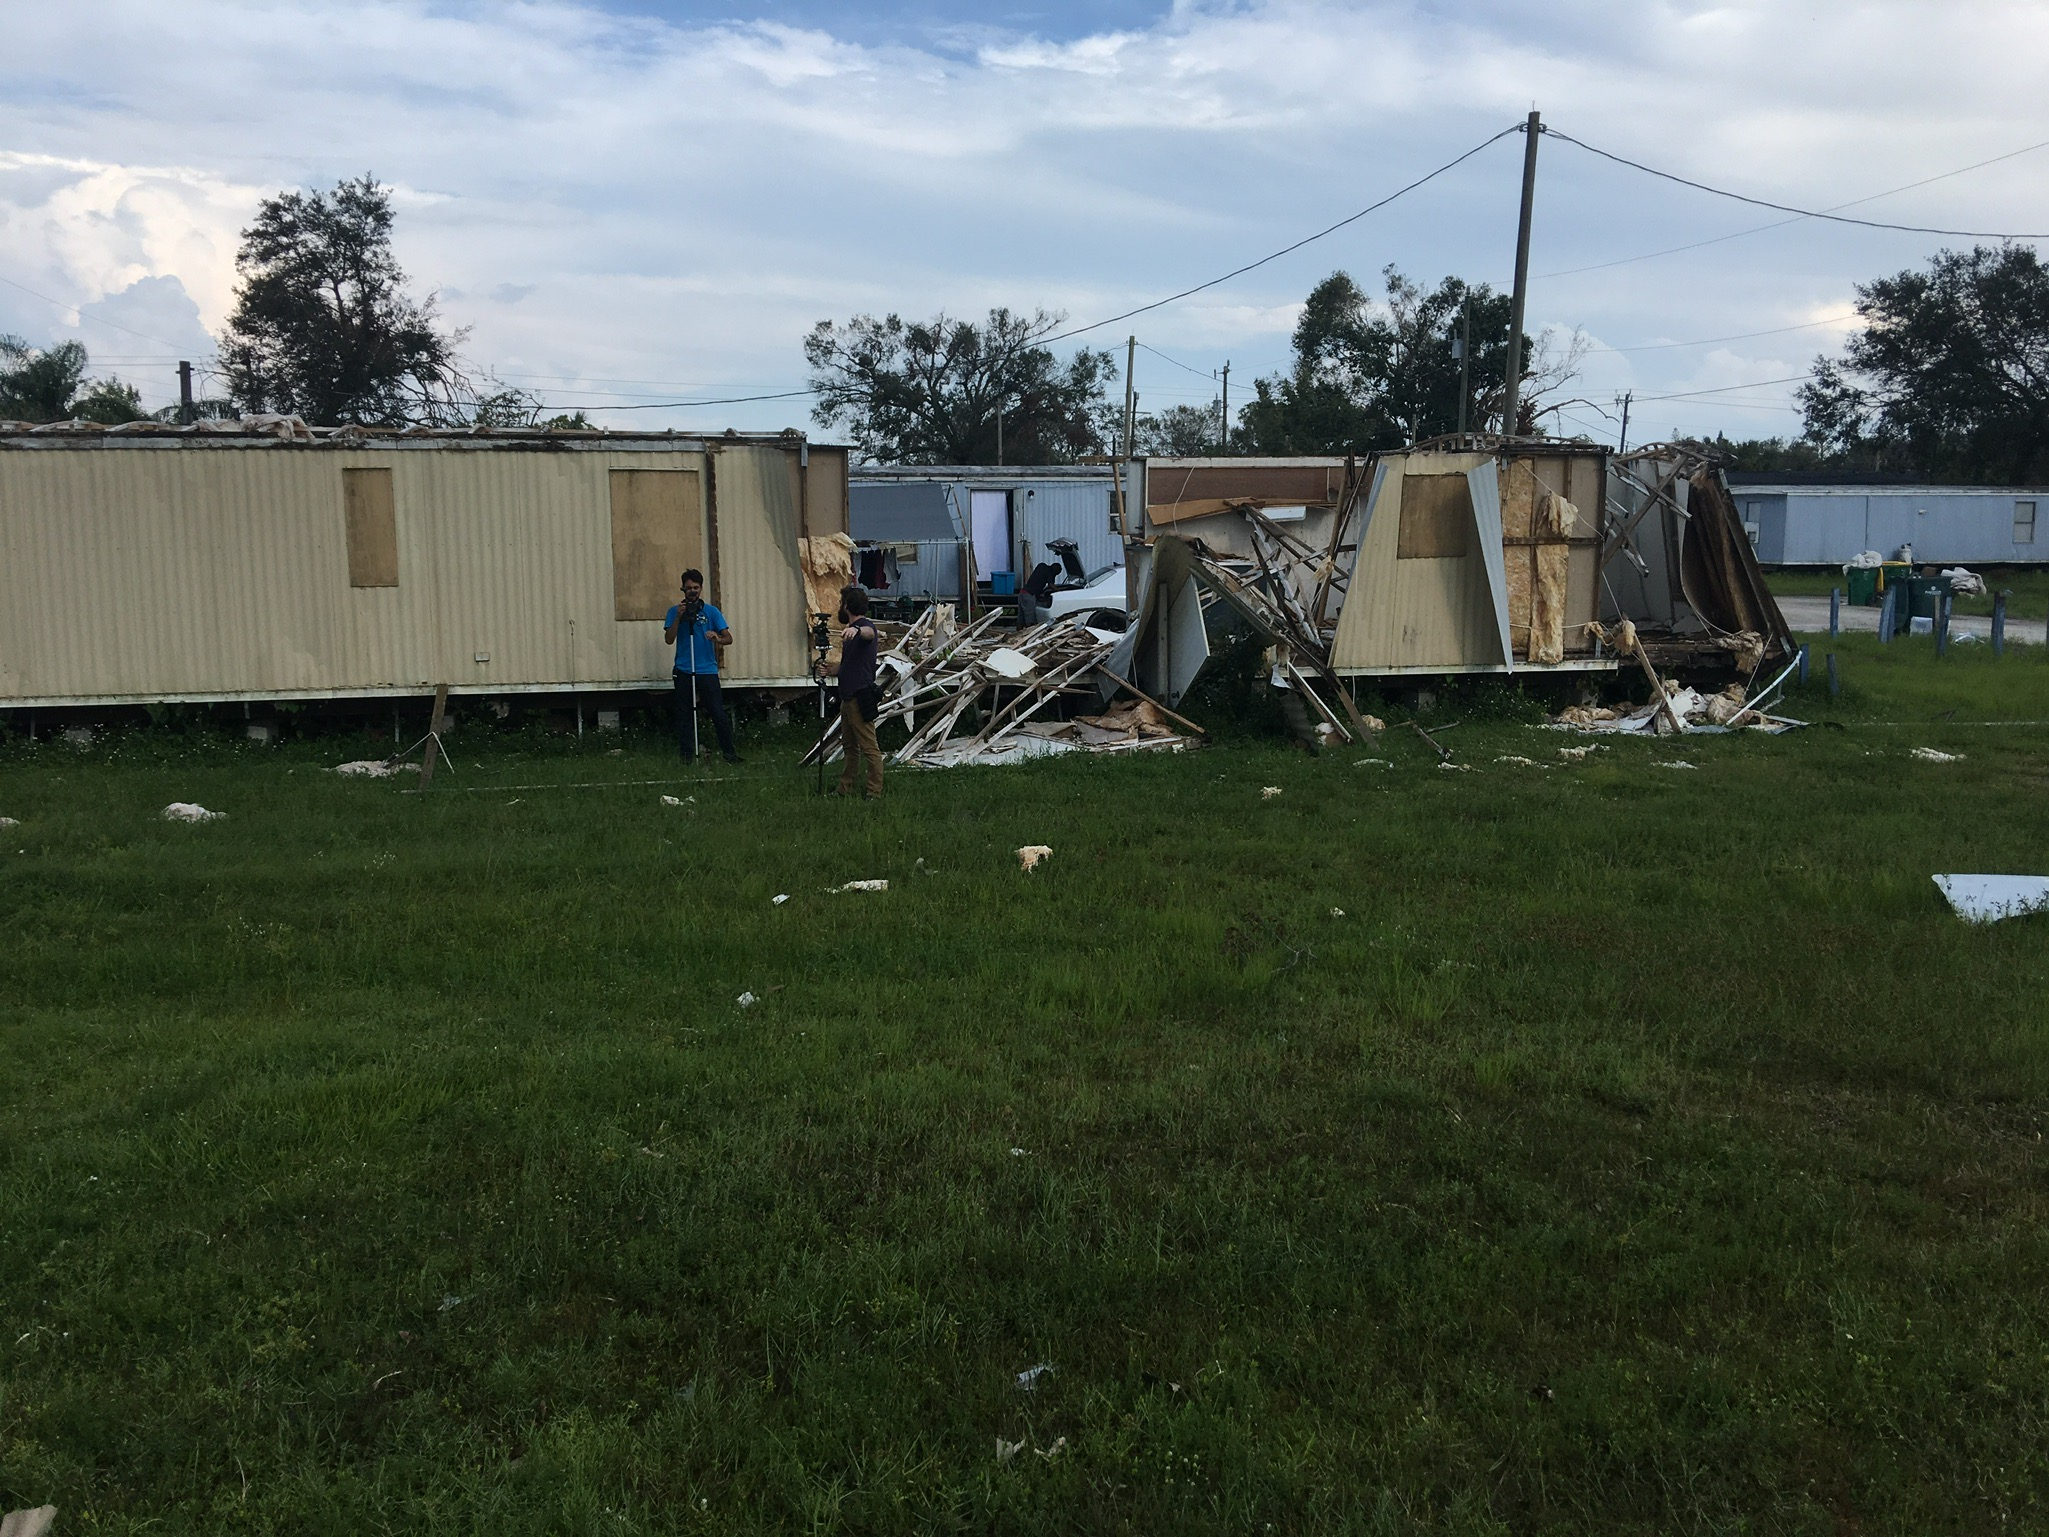 Another home destroyed by Hurricane Irma in Florida